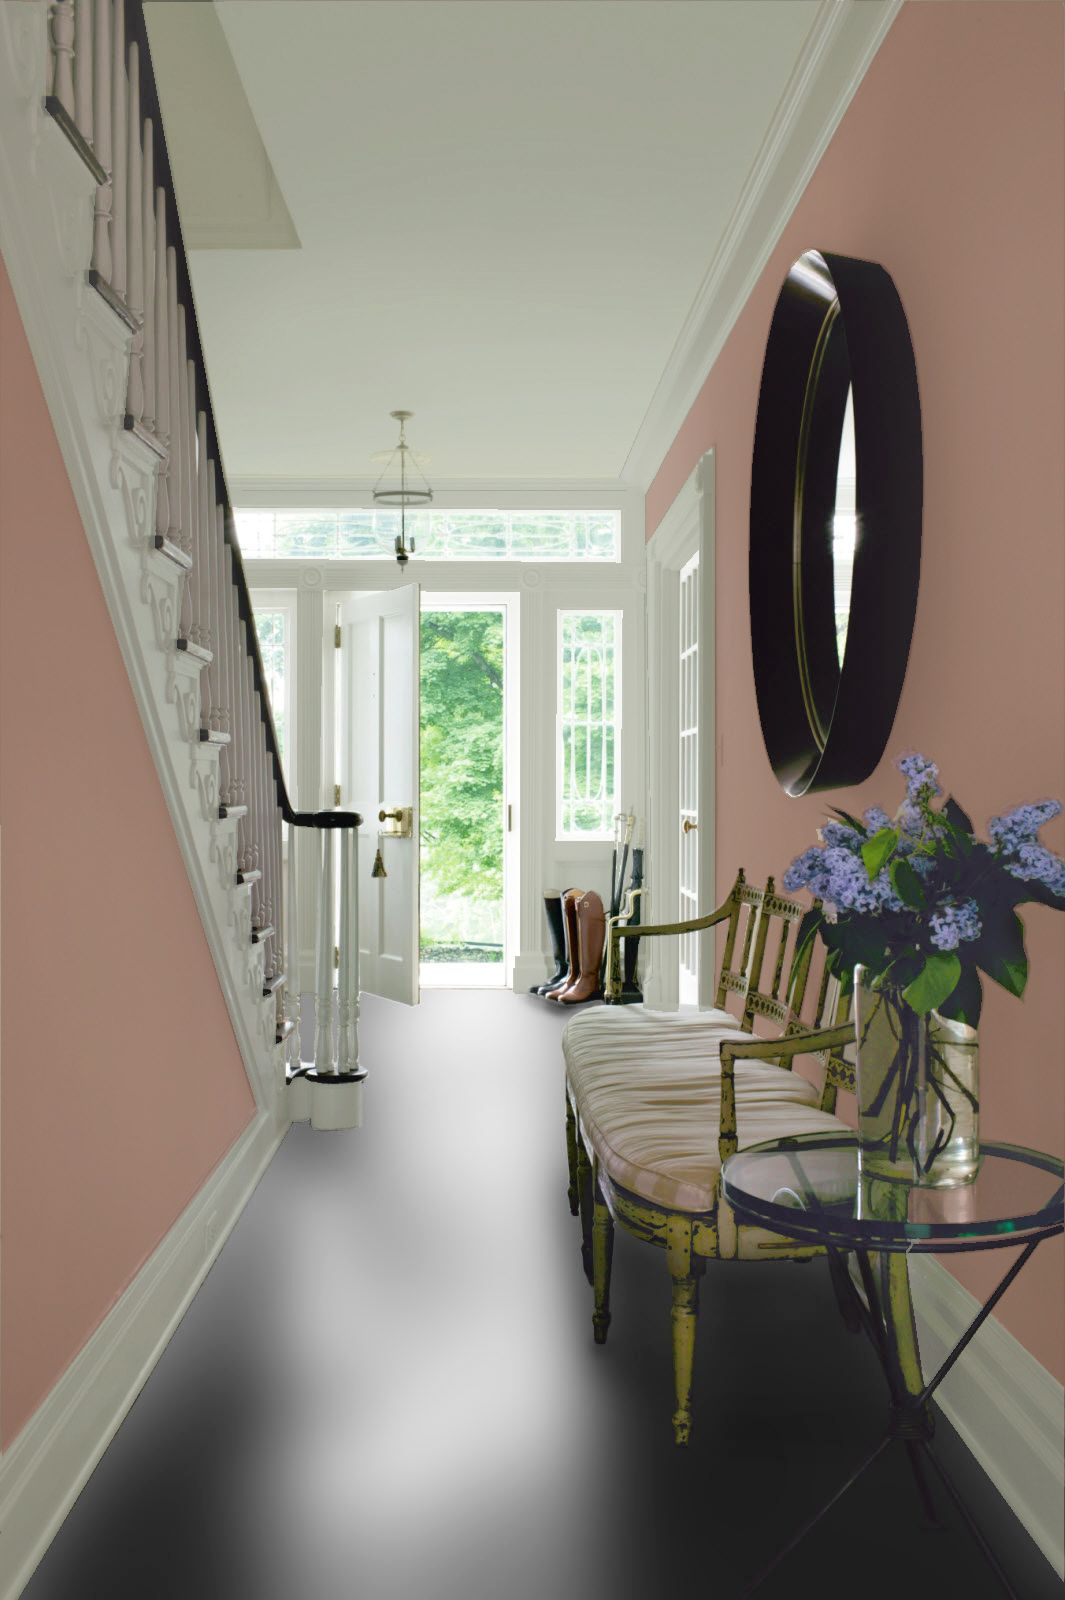 create a peaceful ambiance for all who enter your home with pratt lamberts may color - Pink Home 2015